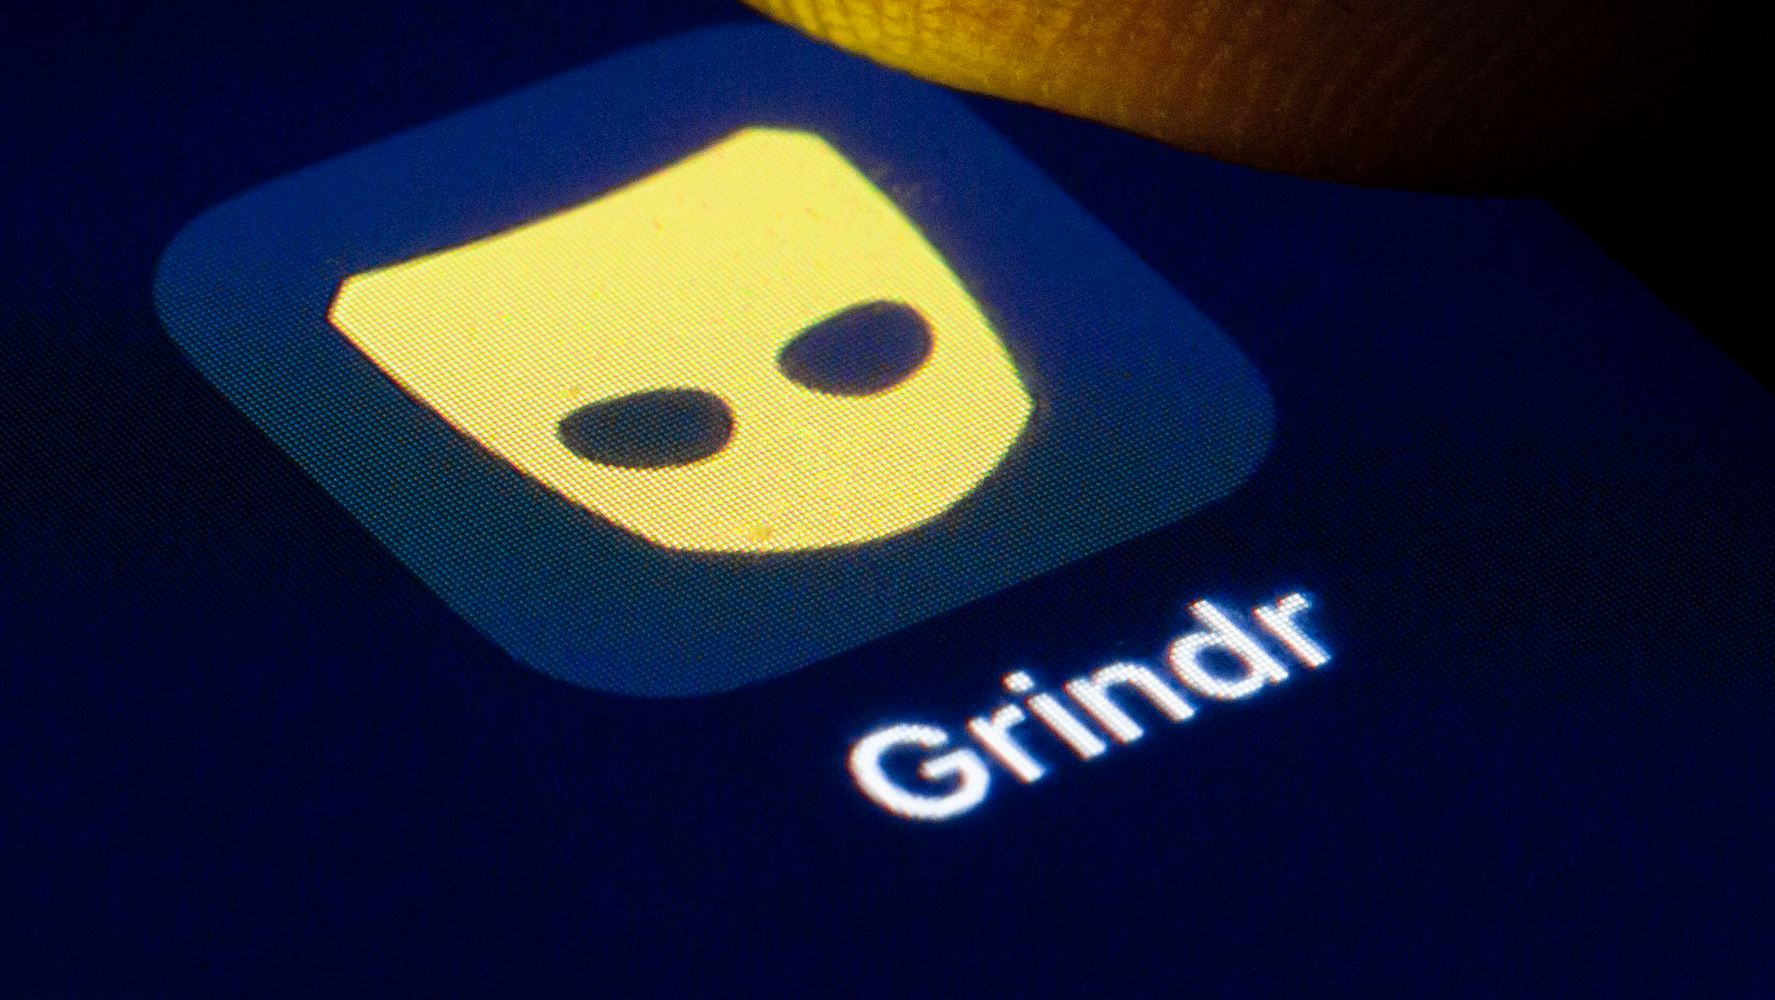 Top Catholic Official Resigns After Phone Data Reveals He Used Gay Dating App